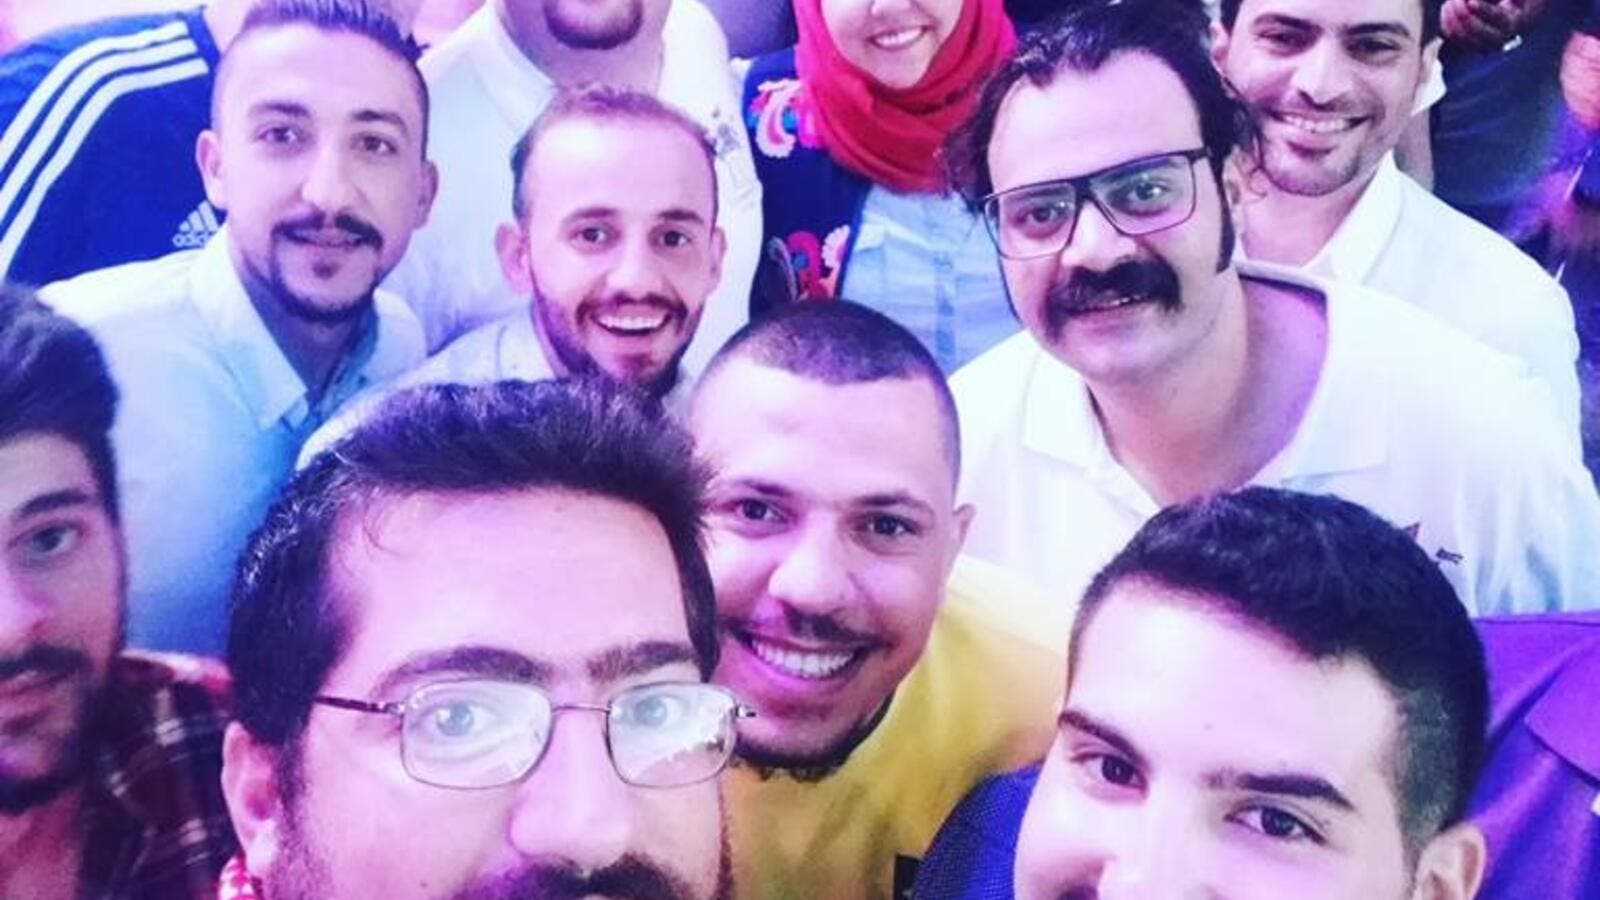 Ahmed Srour (bottom left) and other Jordanian entertainers pose for a selfie. (Facebook)